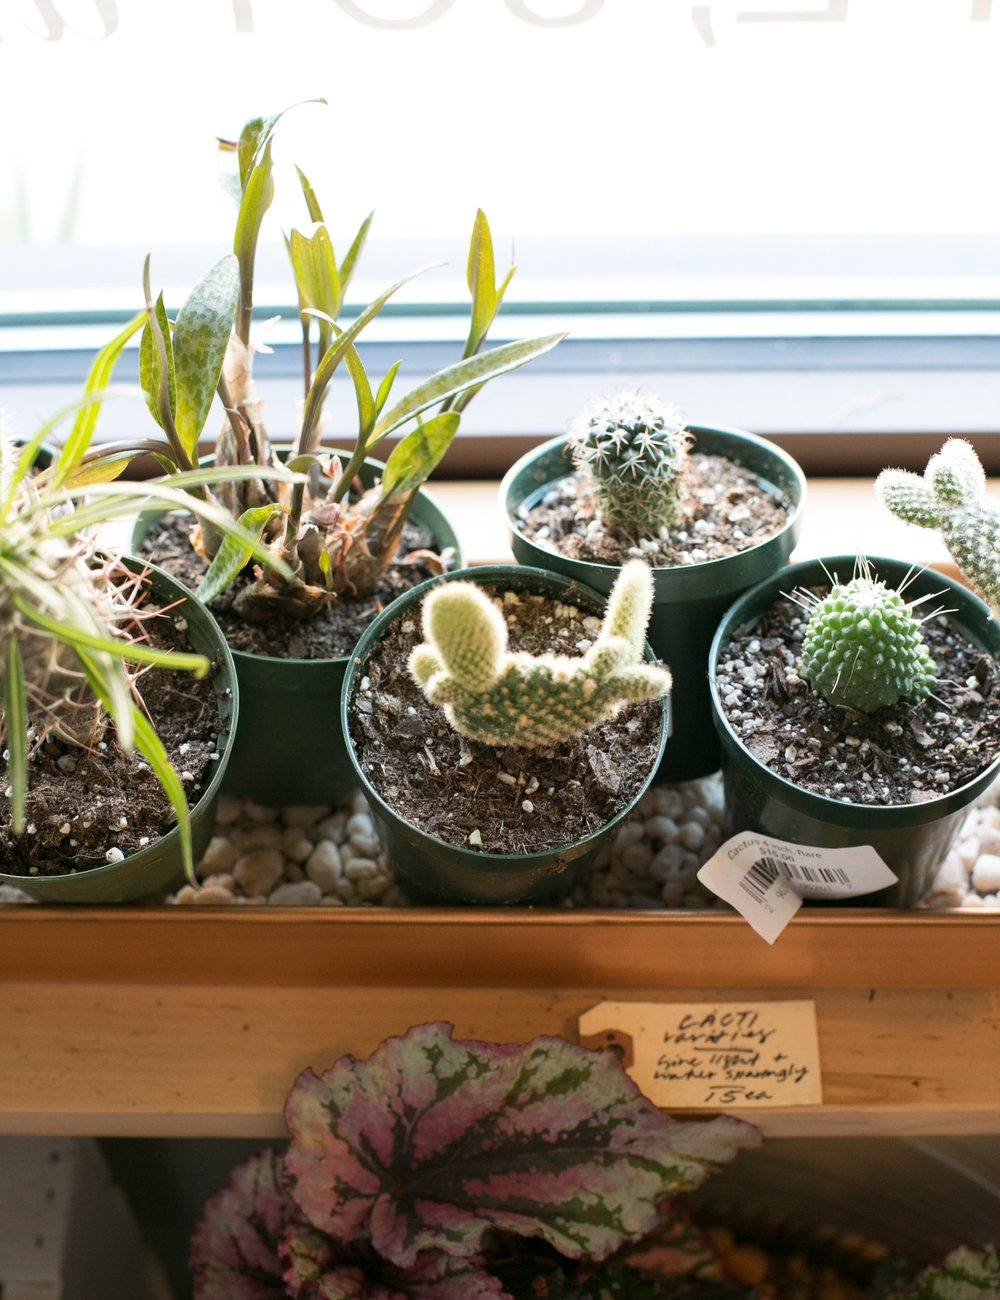 We carry a wide variety of cacti, in all shapes and sizes.